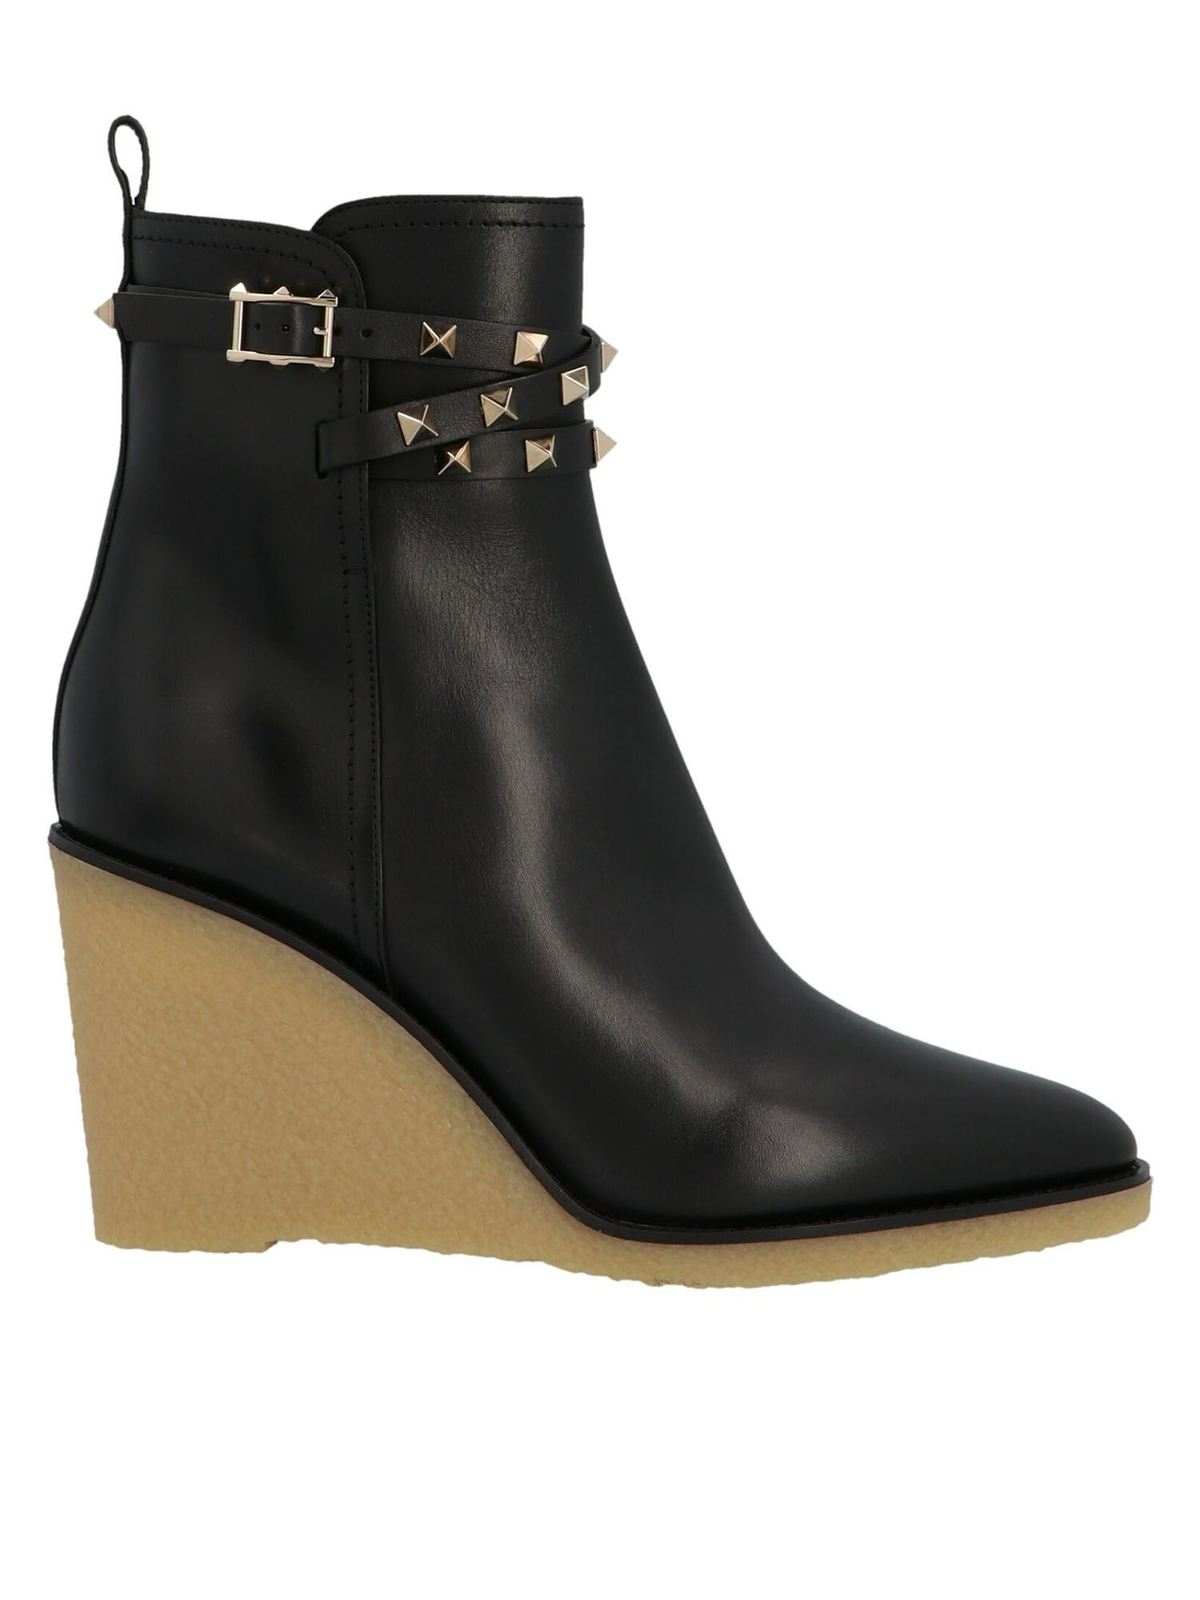 VALENTINO STUDS ANKLE BOOTS IN BLACK